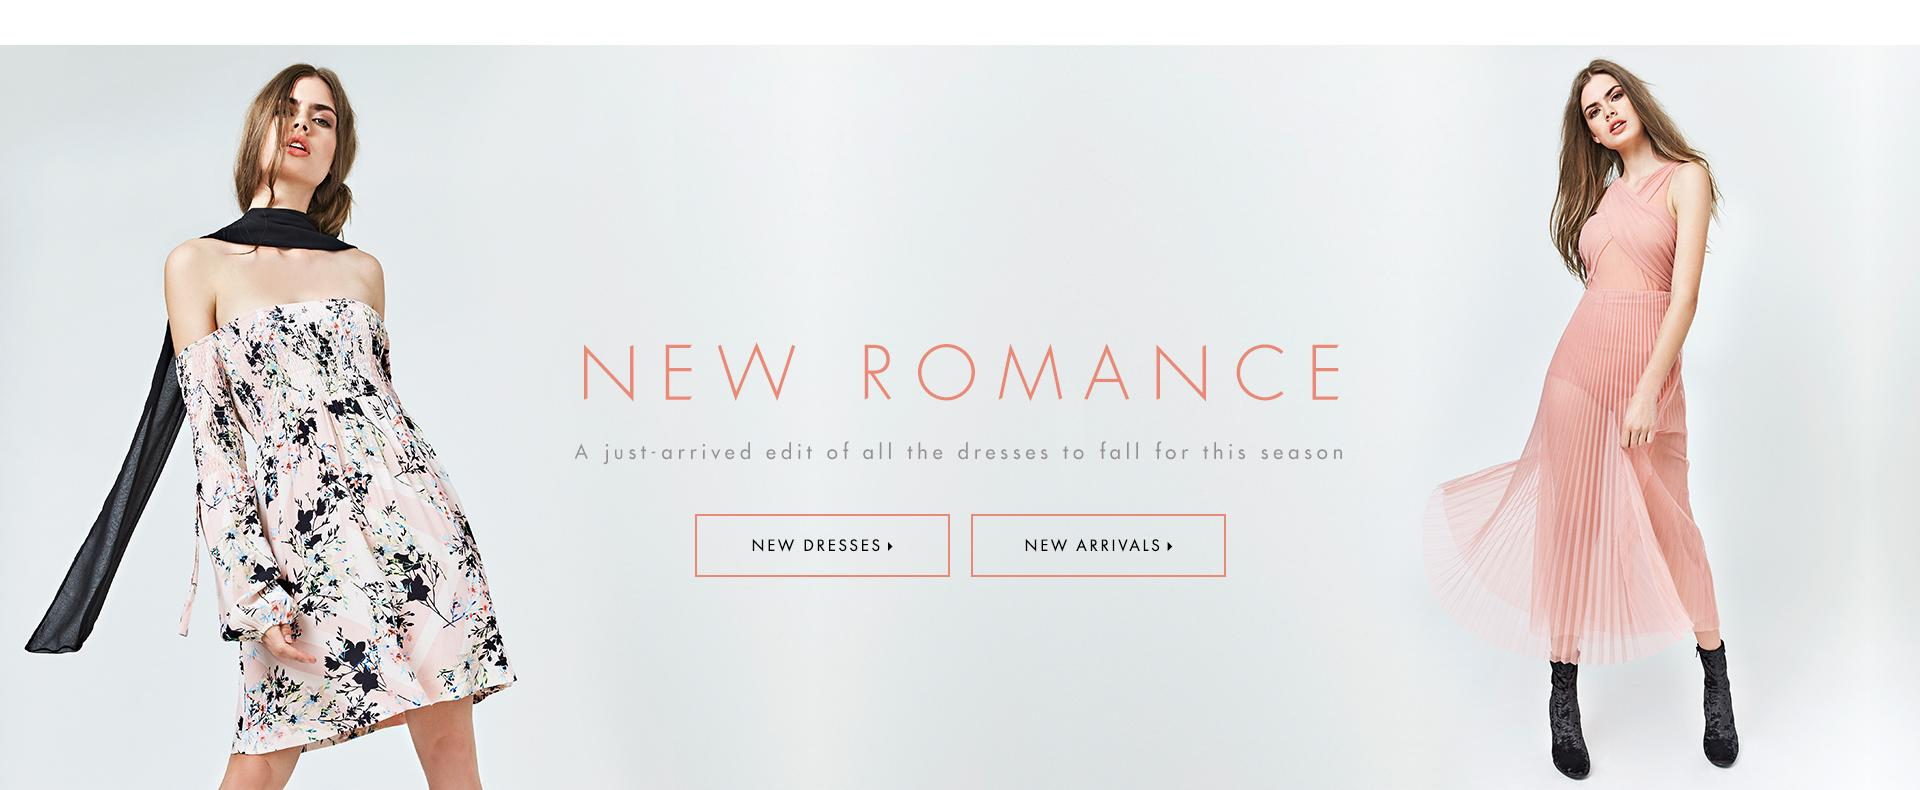 New Romance A just-arrived edit of all the dresses to fall for this season